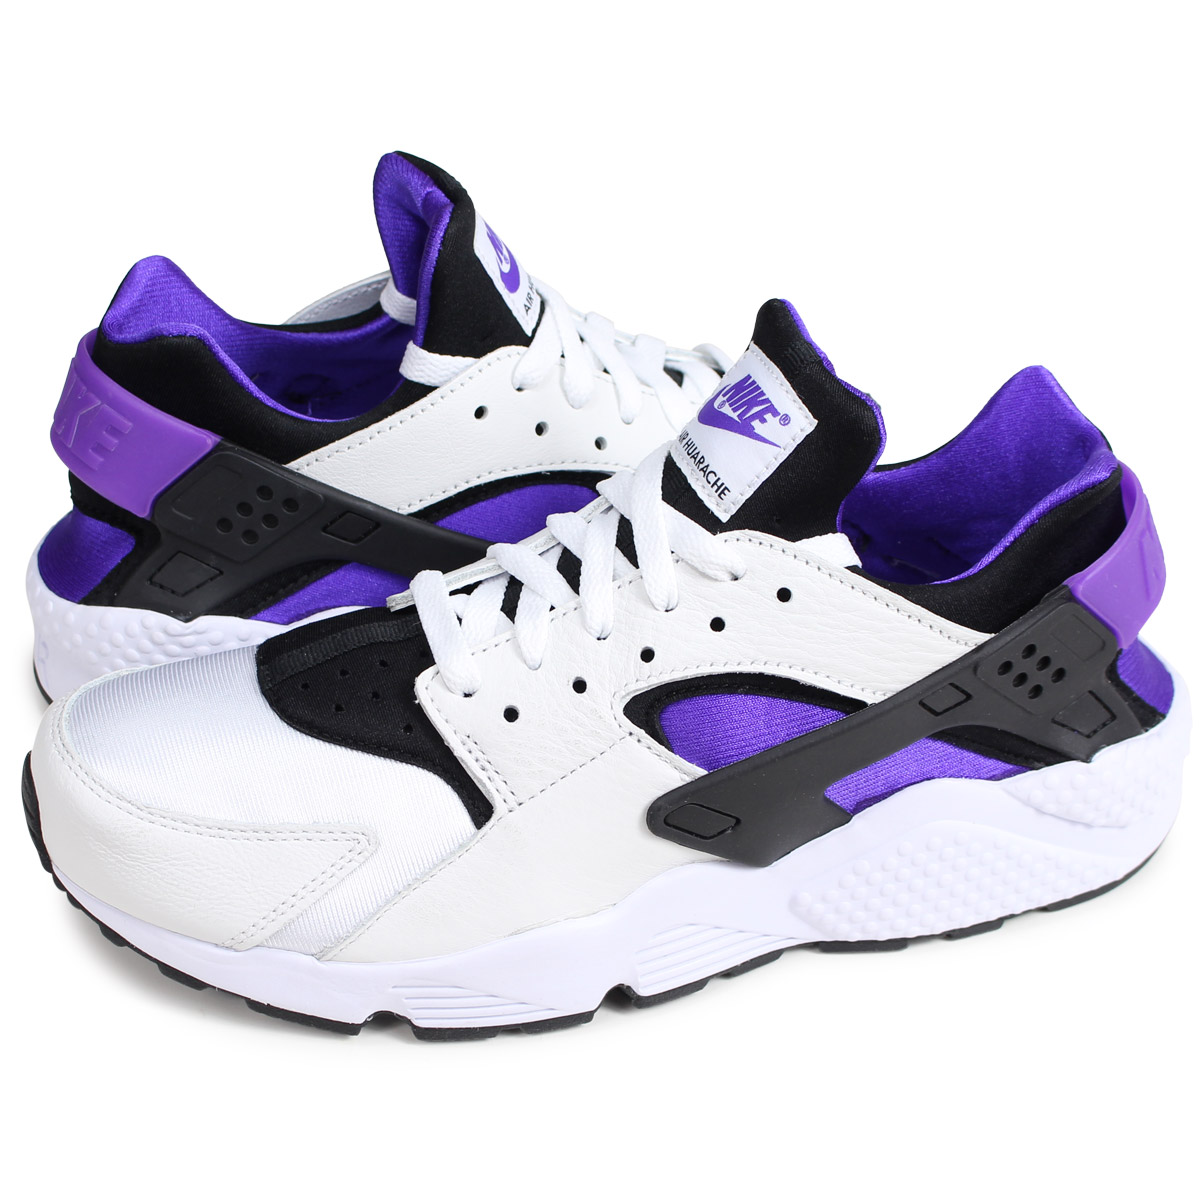 new products c457b 5d145 Nike NIKE エアハラチランスニーカーメンズ AIR HUARACHE RUN 91 QS white AH8049-001 [192]